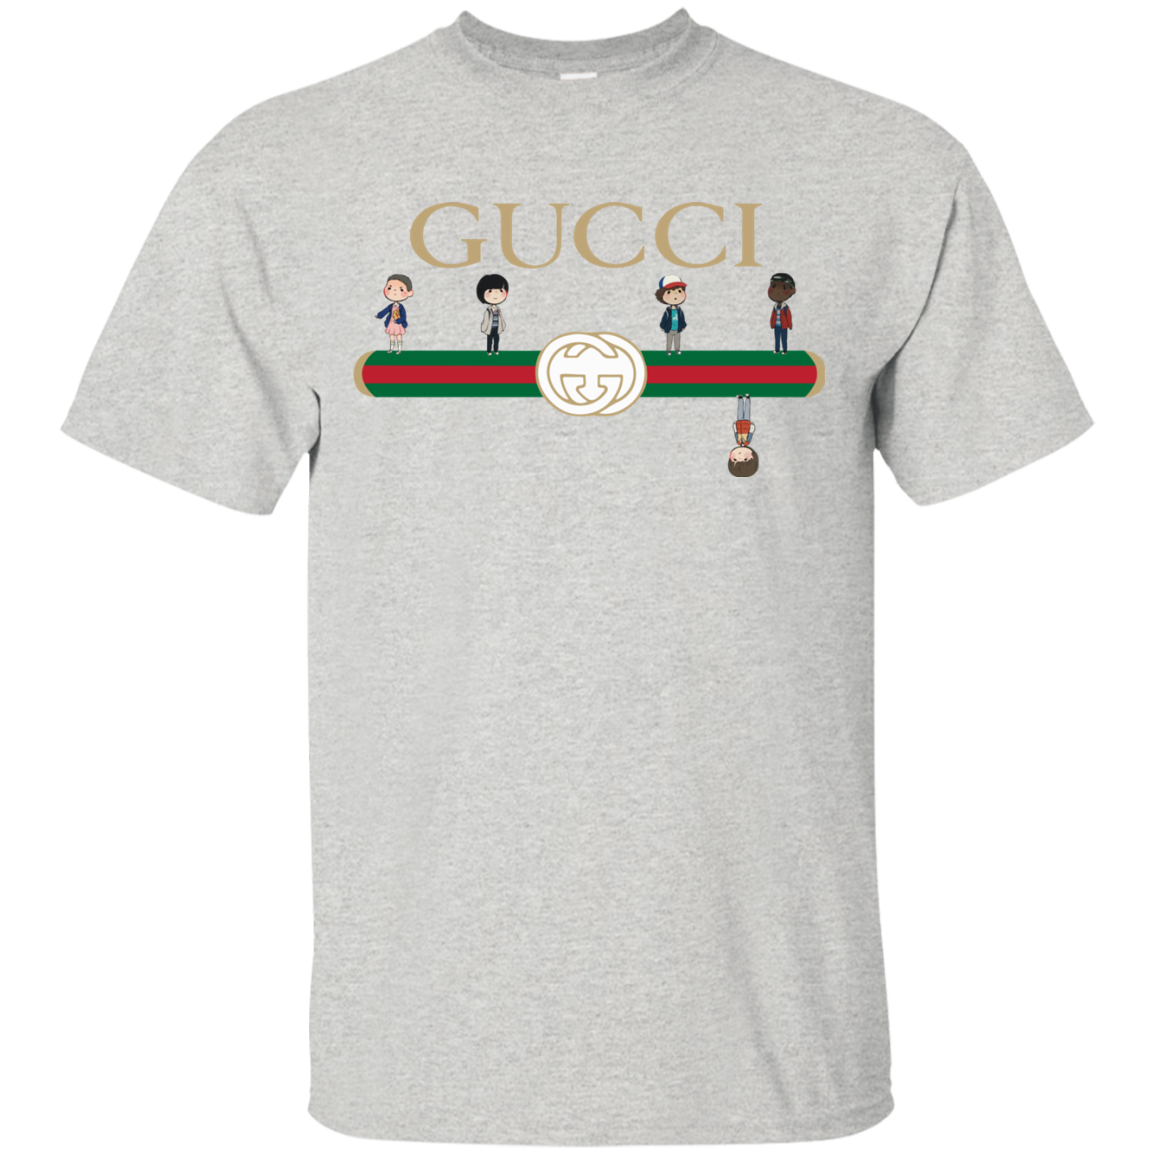 Gucci pants clipart picture free Stranger Things Upside Down Gucci Shirt, Sweatshirt | Allbluetees ... picture free